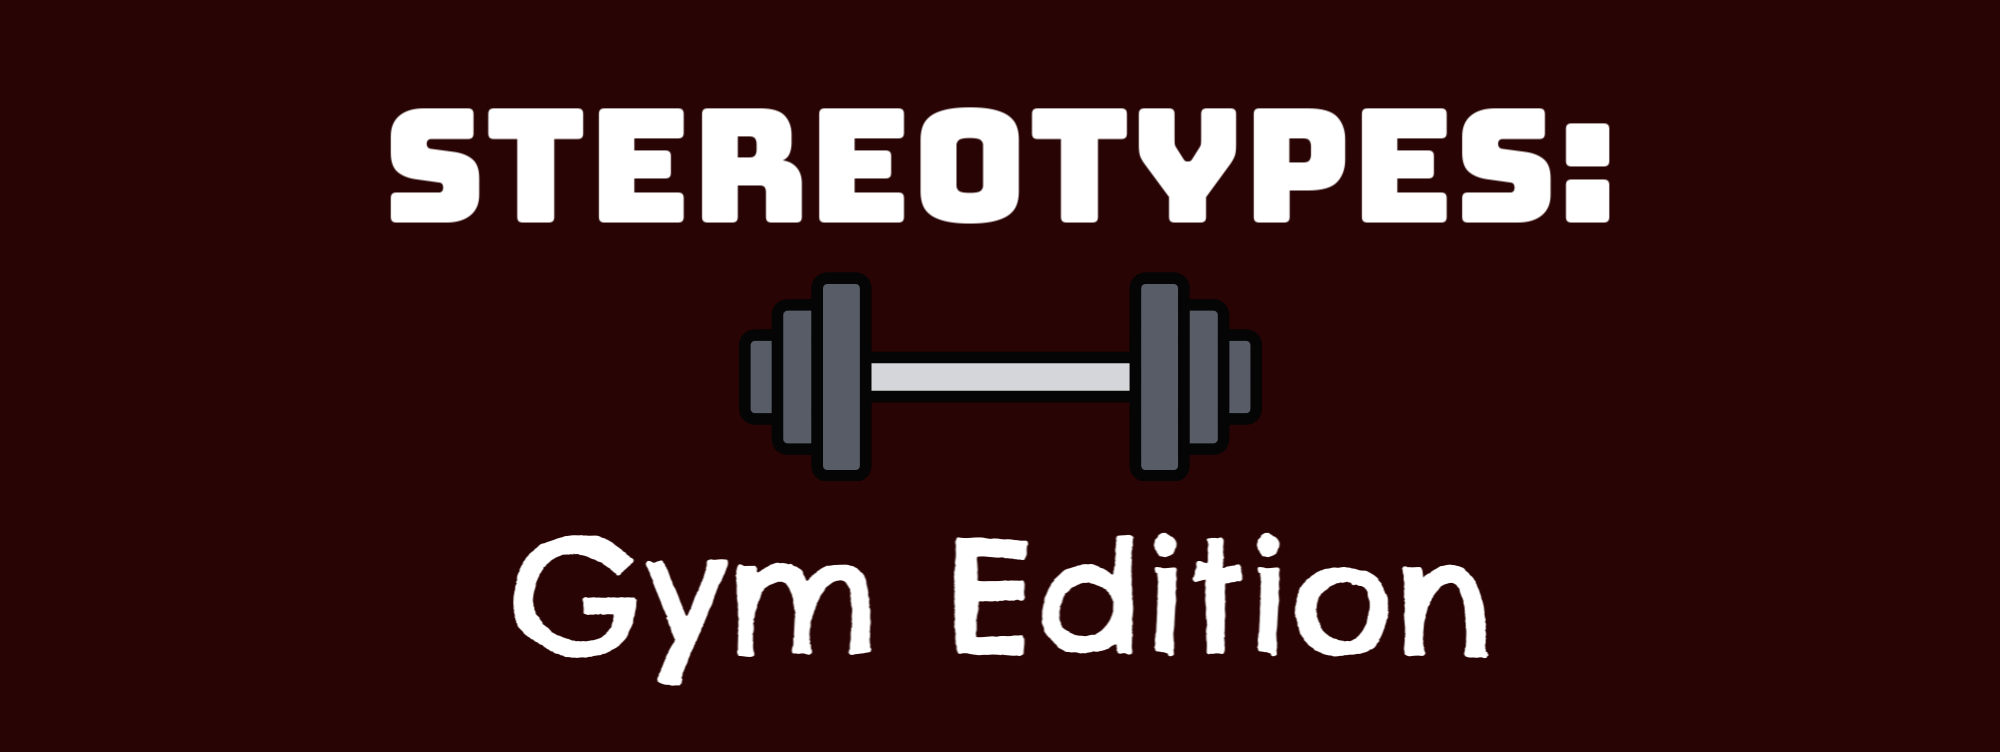 gym stereotypes